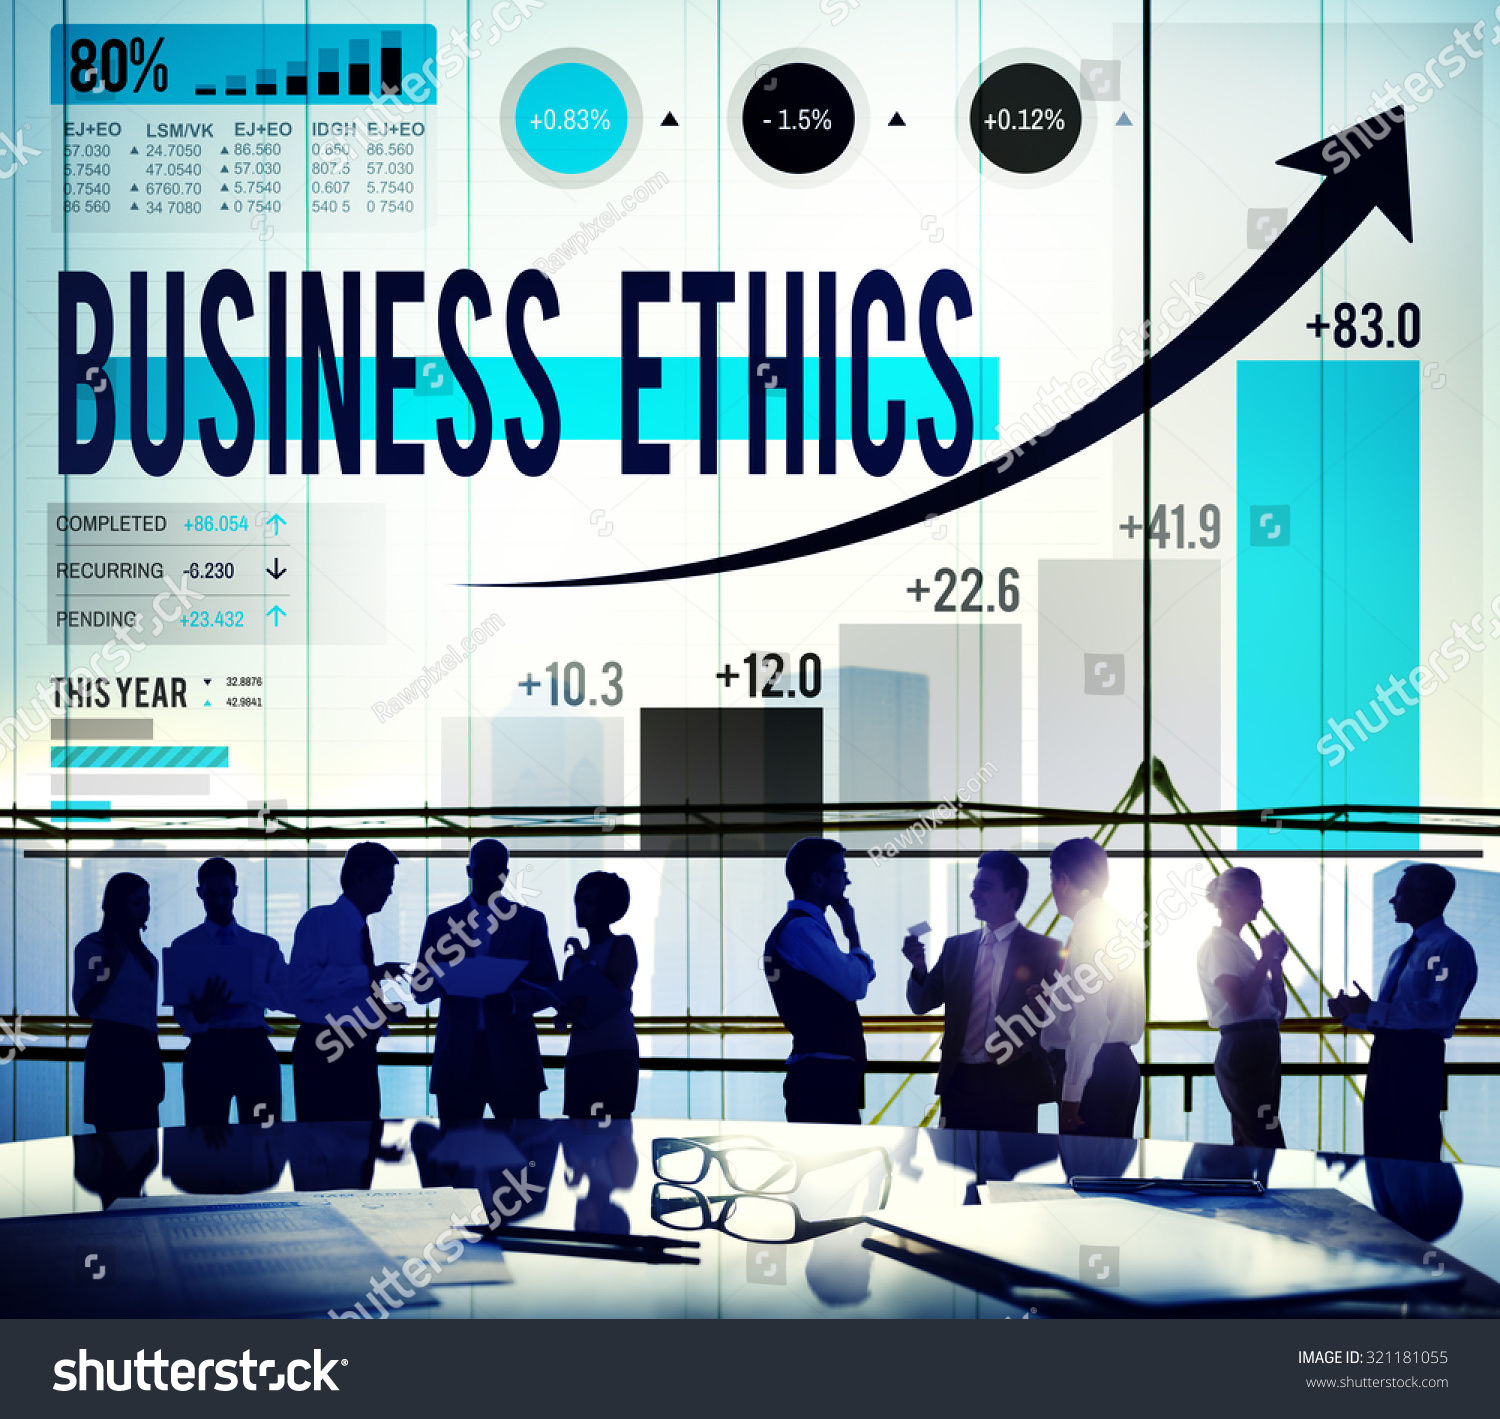 business moral responsibility Start studying business ethics- moral responsibility and stakeholders learn vocabulary, terms, and more with flashcards, games, and other study tools.